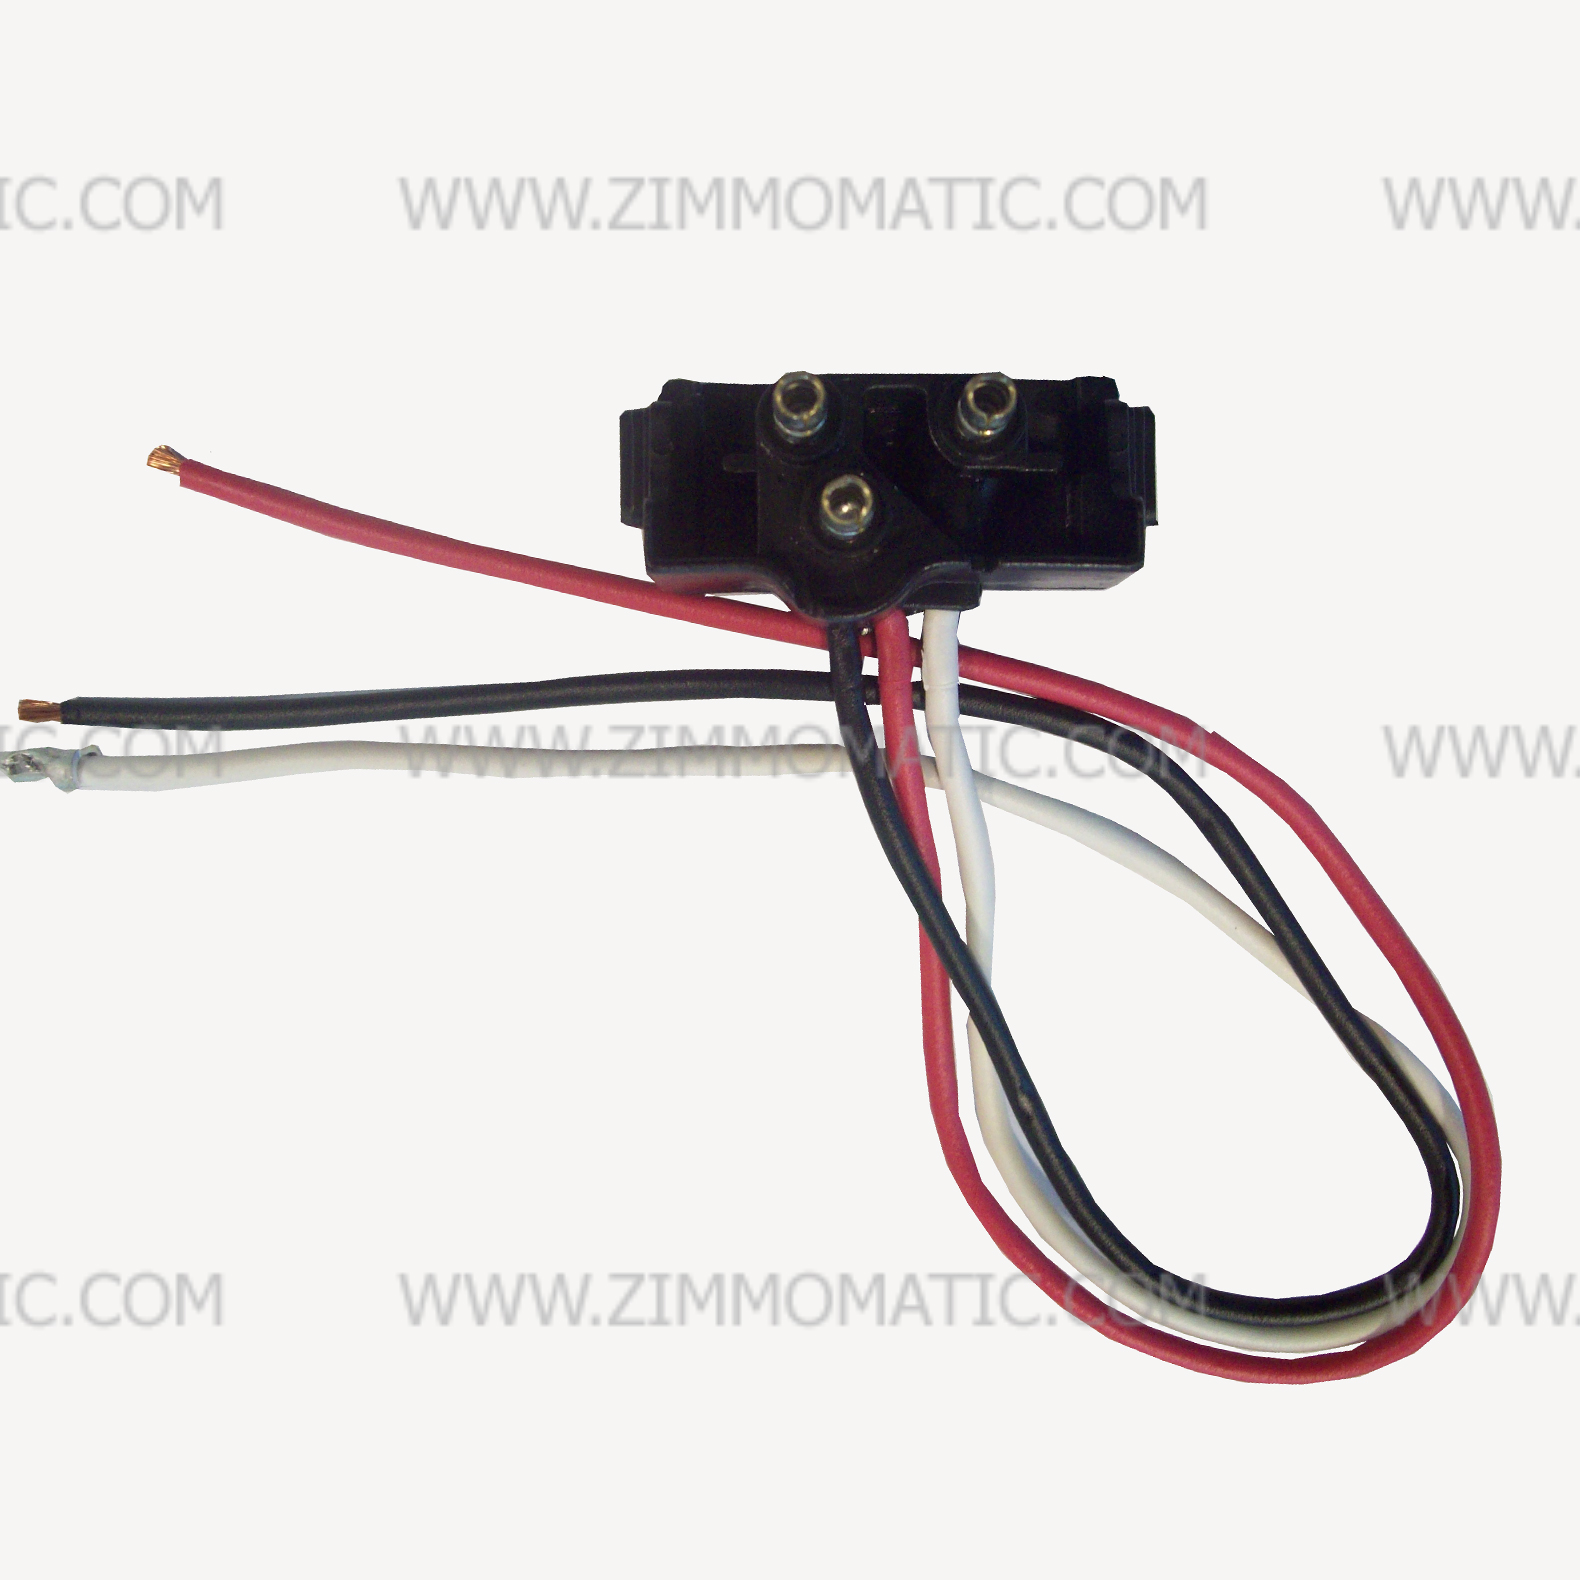 Pigtail  3 Prong  3 Wire  94993  Used For Lights Needing 3